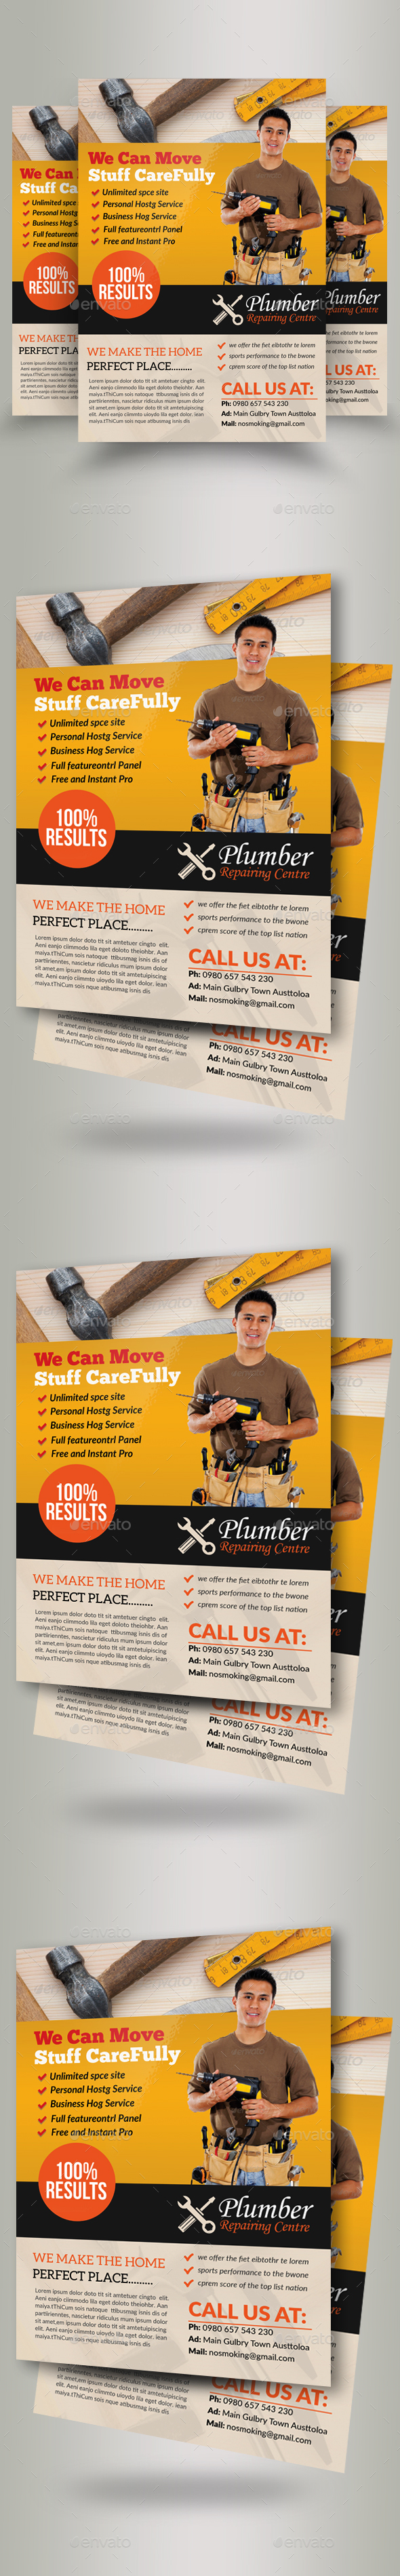 GraphicRiver Handyman & Plumber Services Flyer 20649041